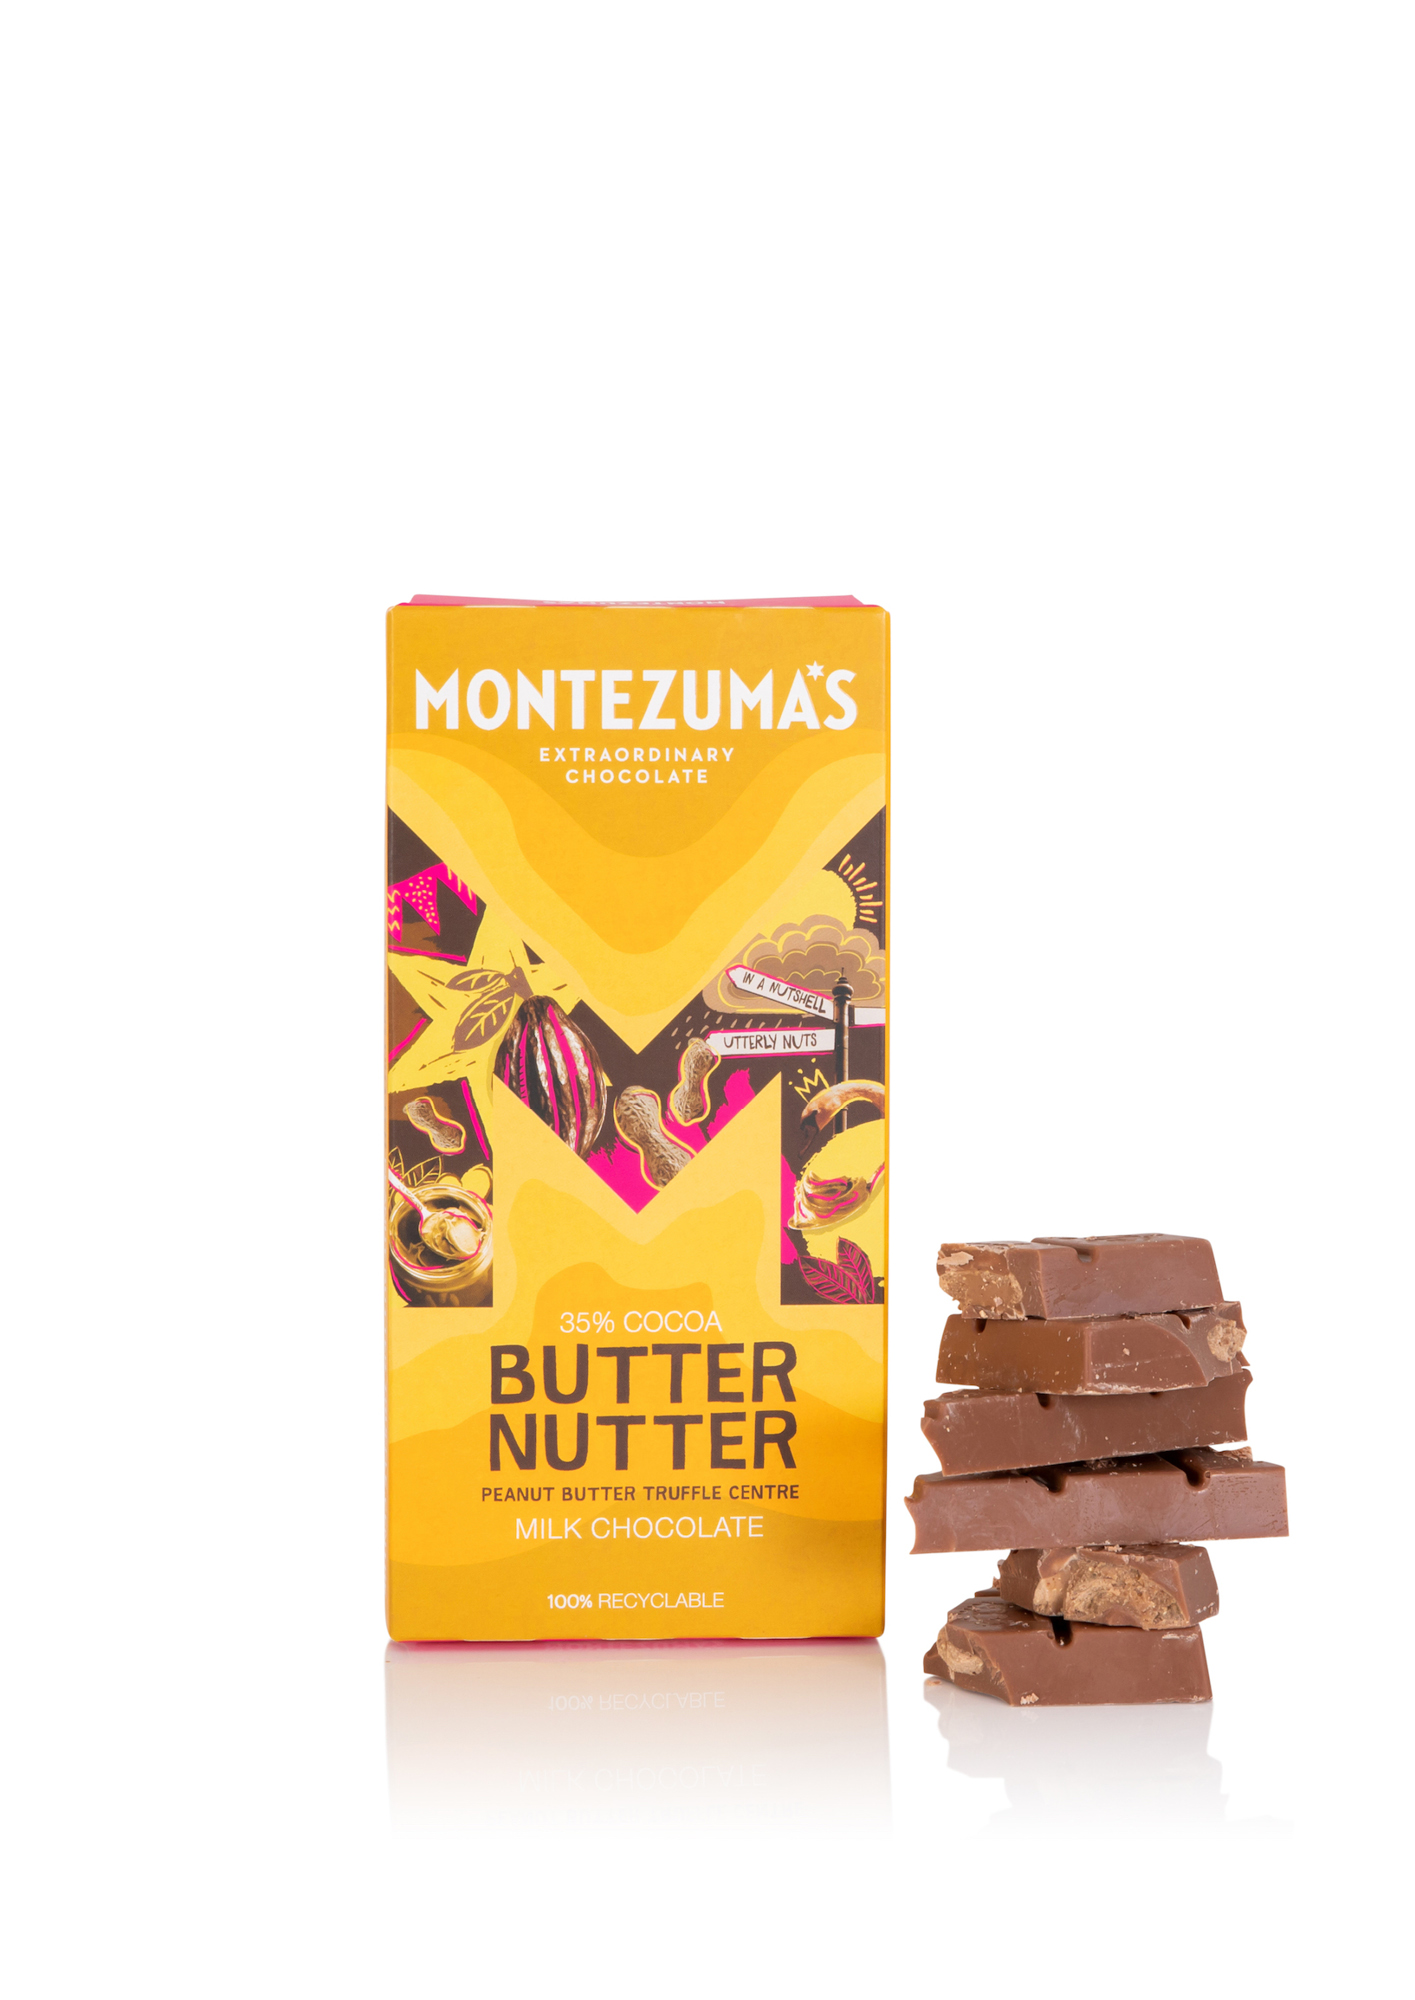 Montezuma's Butter Nutter, a favourite of Helen Pattinson